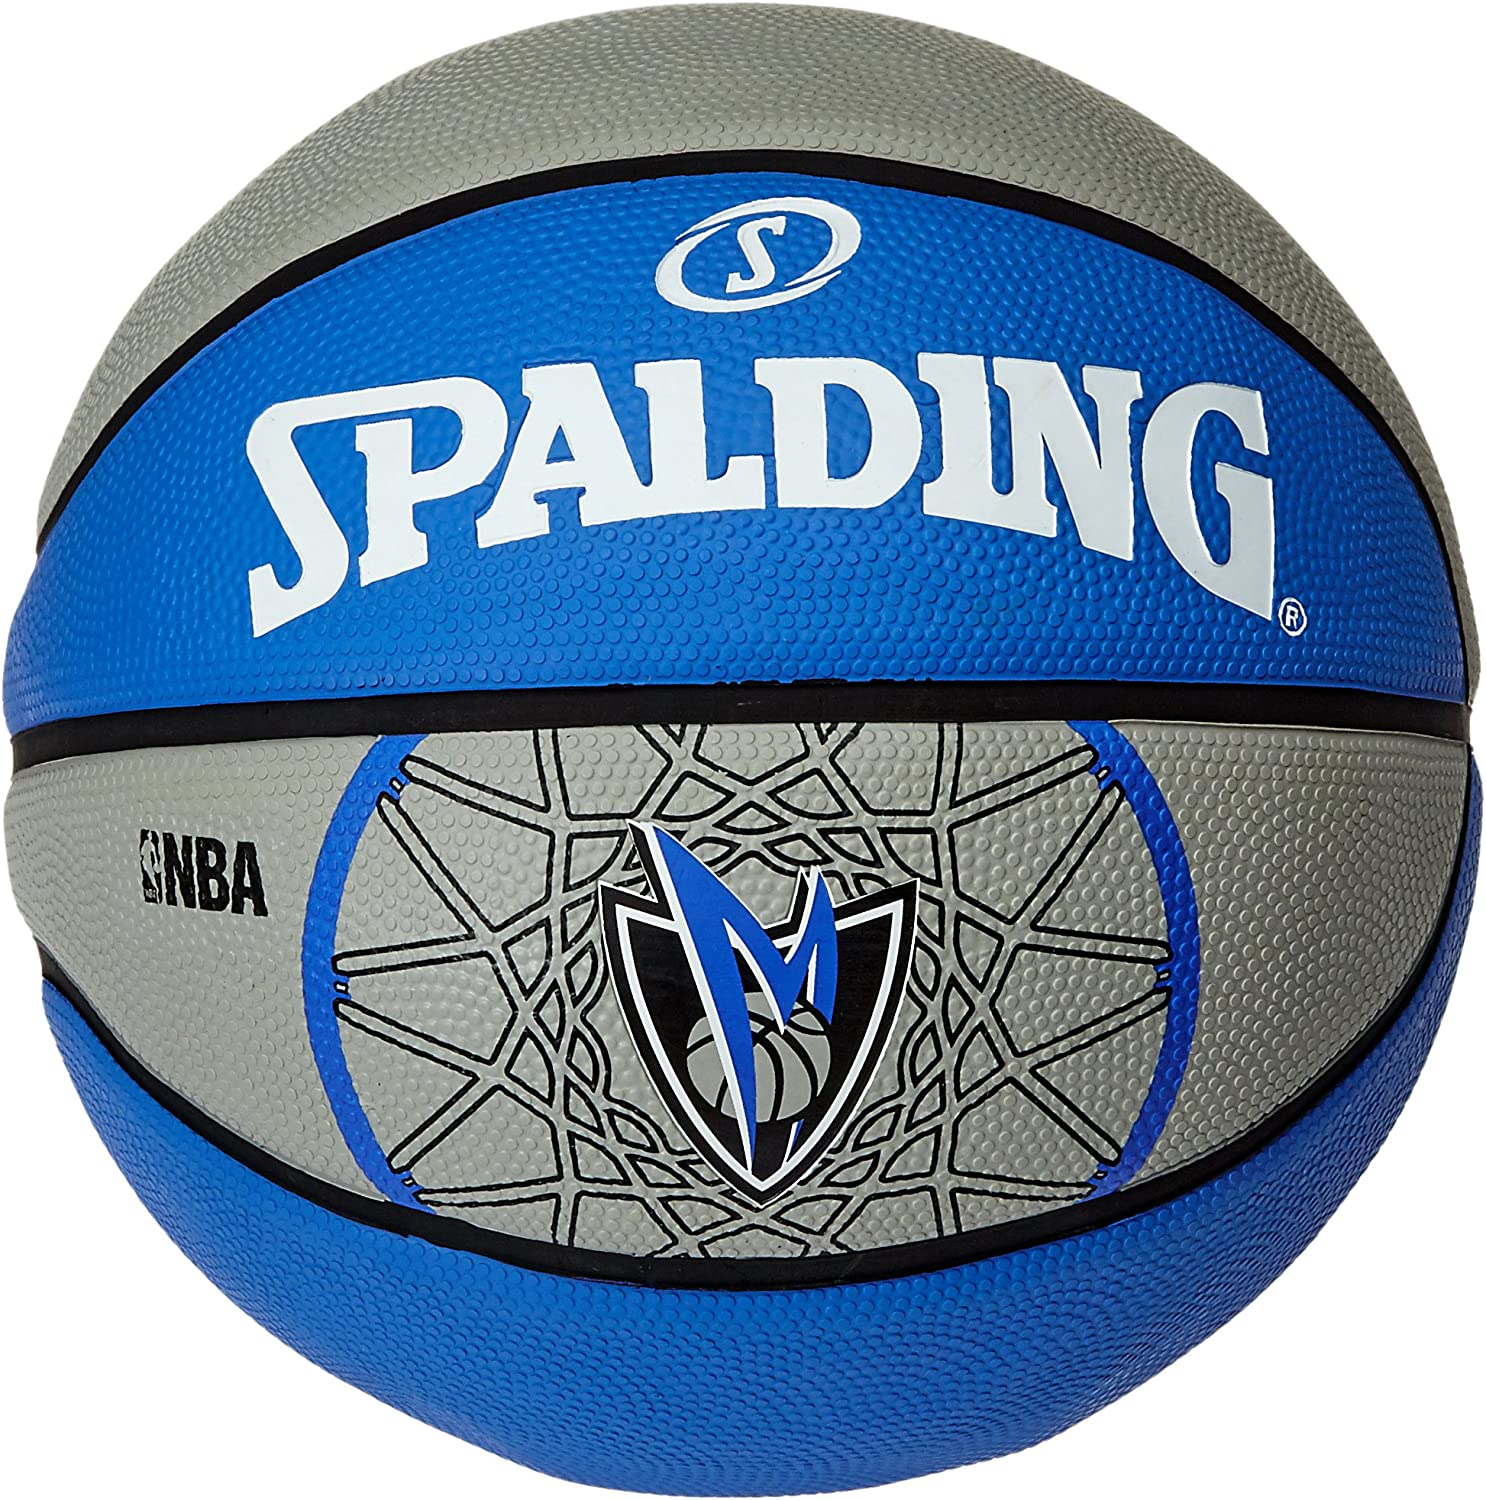 Spalding Dallas Mavericks - Pelota de Baloncesto, Talla 7: Amazon ...